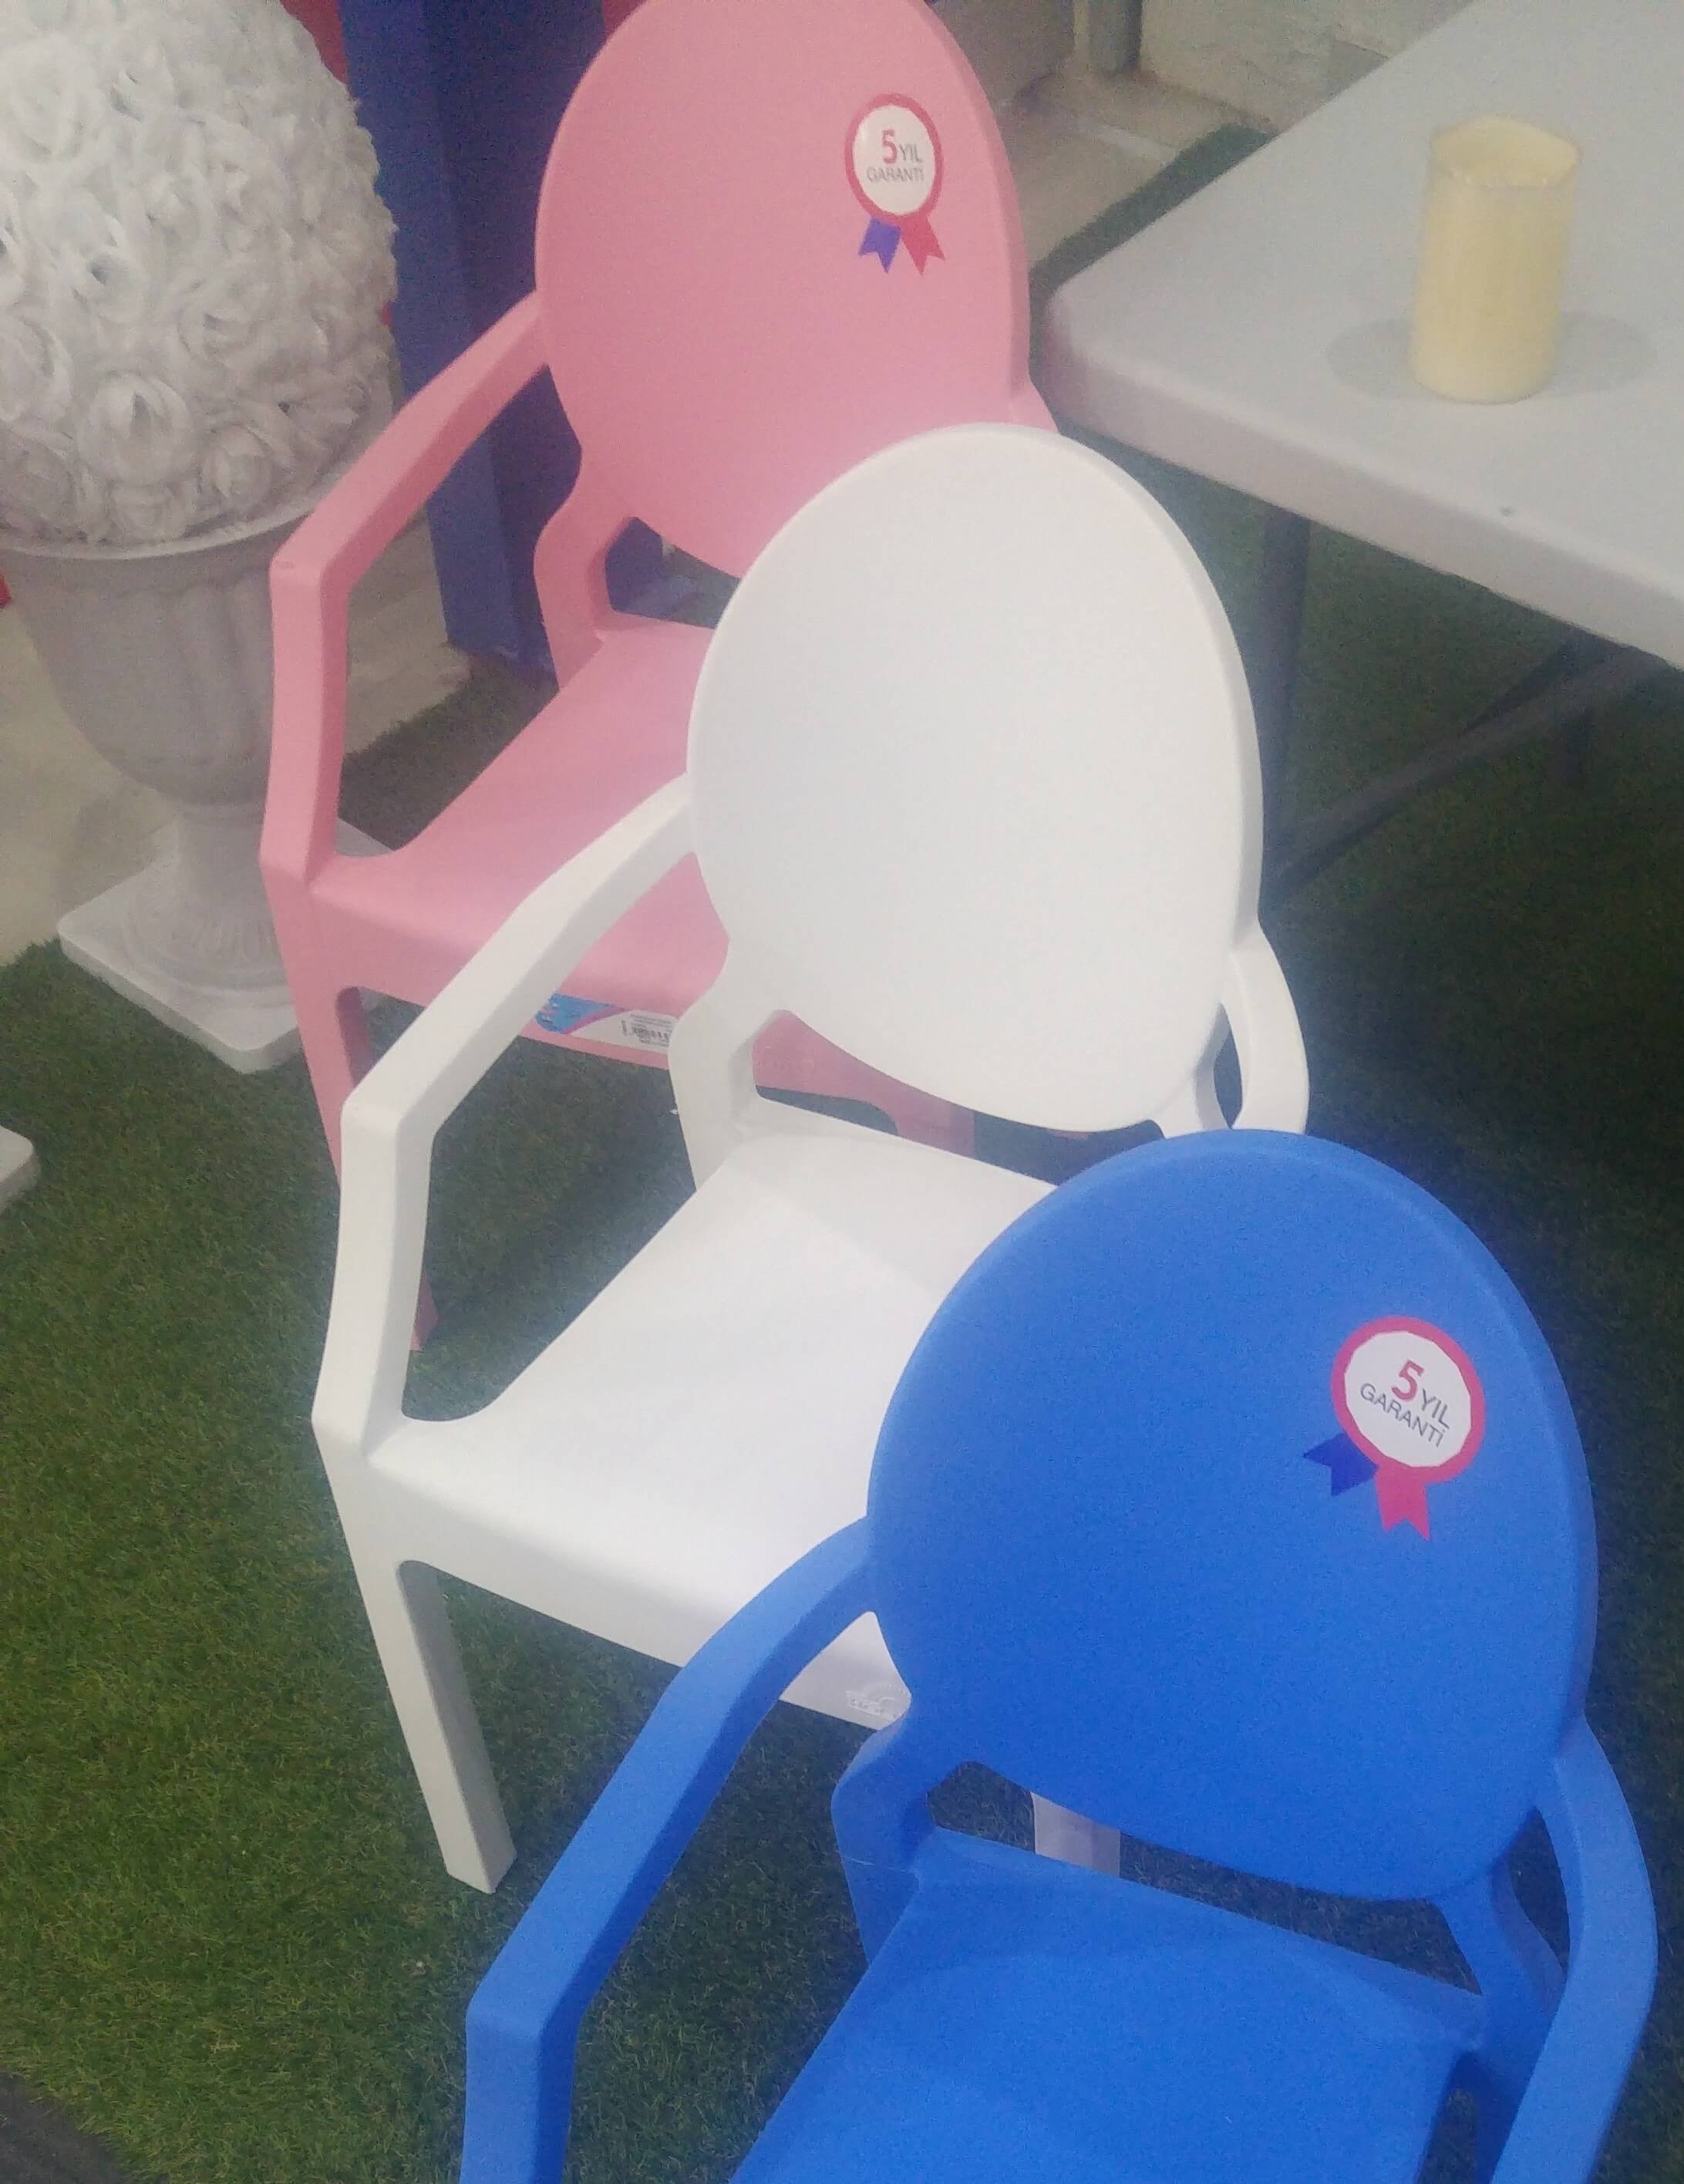 Magnificent Ghost Chairs For Kids Kiddies Ghost Chairs For Sale Sa Bralicious Painted Fabric Chair Ideas Braliciousco